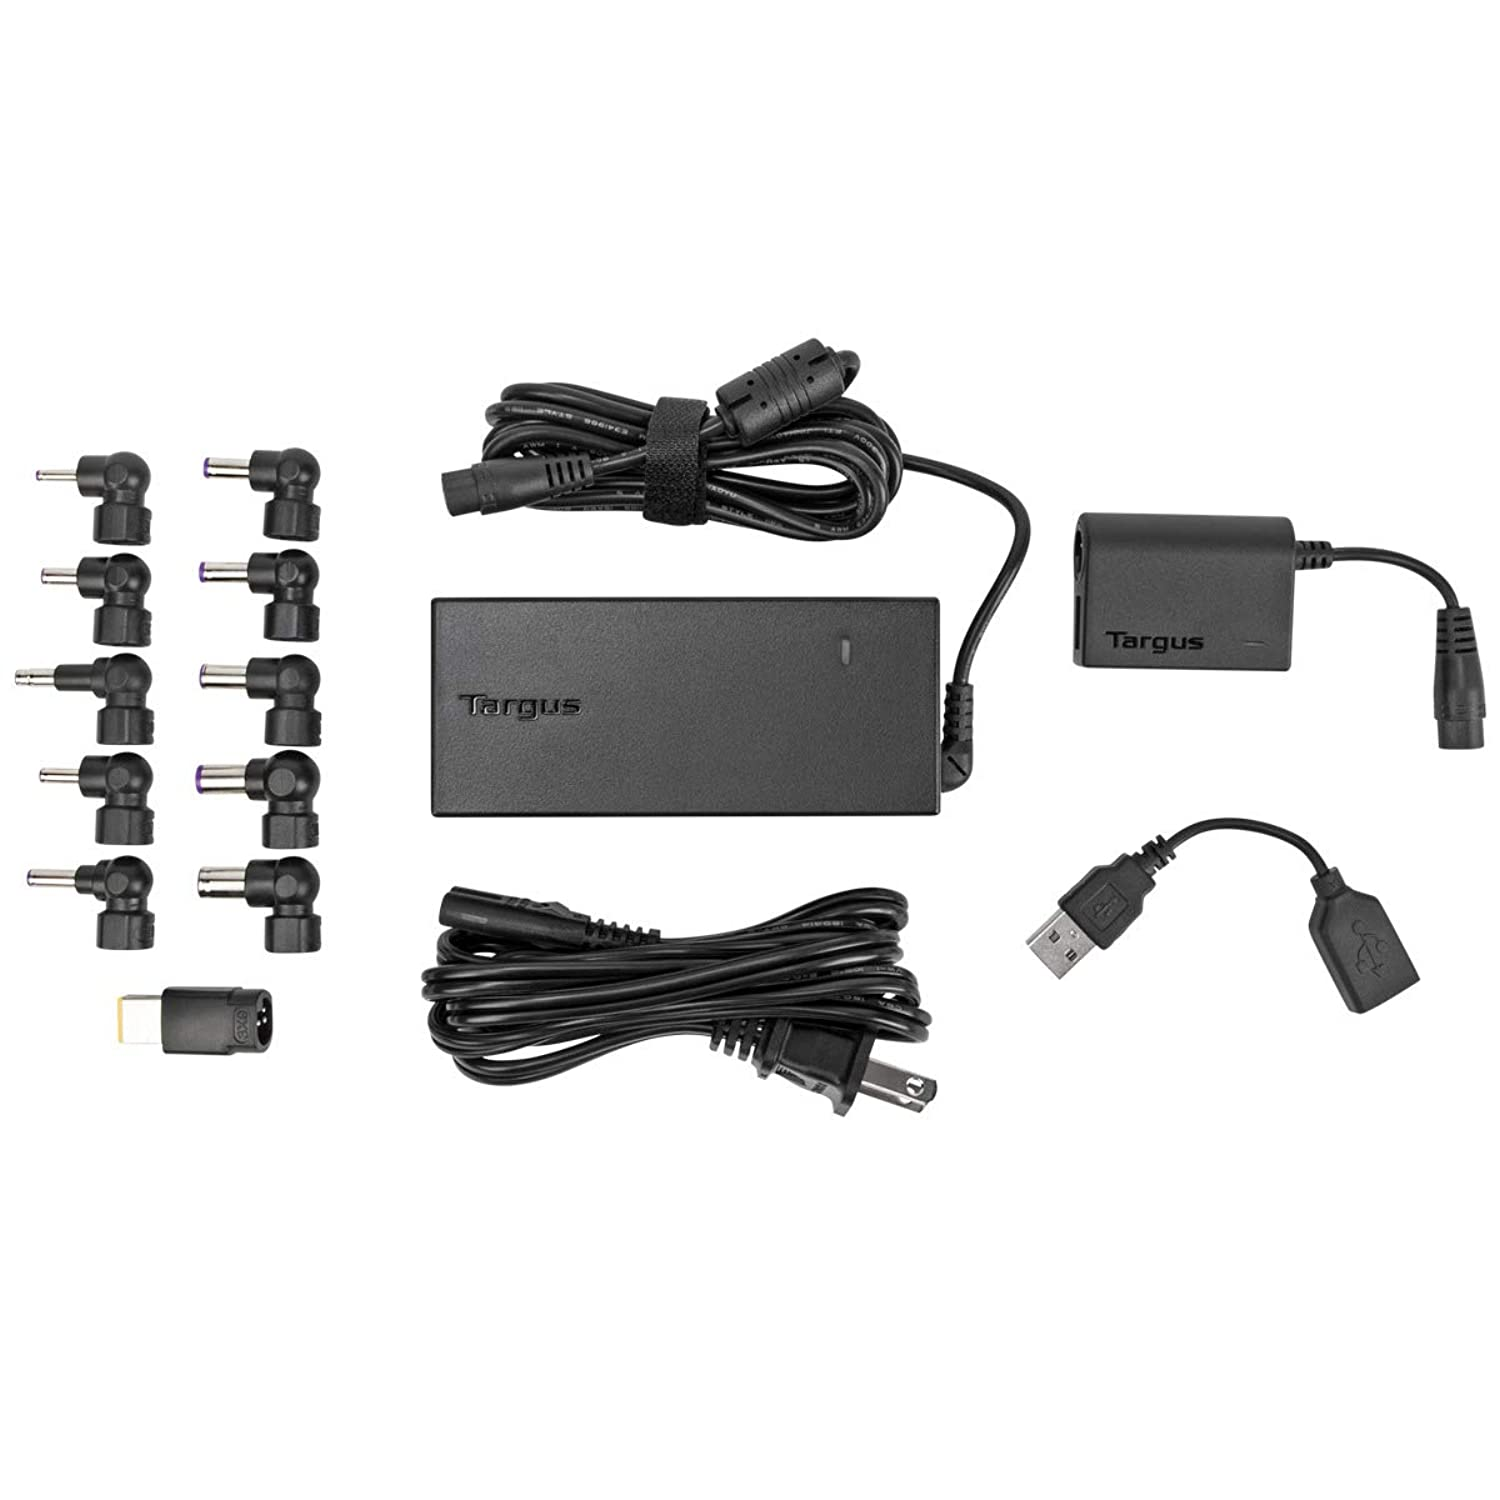 Targus 90W AC Universal Laptop and Mobile Device Charger with USB Port, Includes 12 Power Tips Compatible with Major Brands: Acer, ASUS, HP, Compaq, Dell, Toshiba, Gateway, IBM, Lenovo, Fujitsu (APA32USZ)